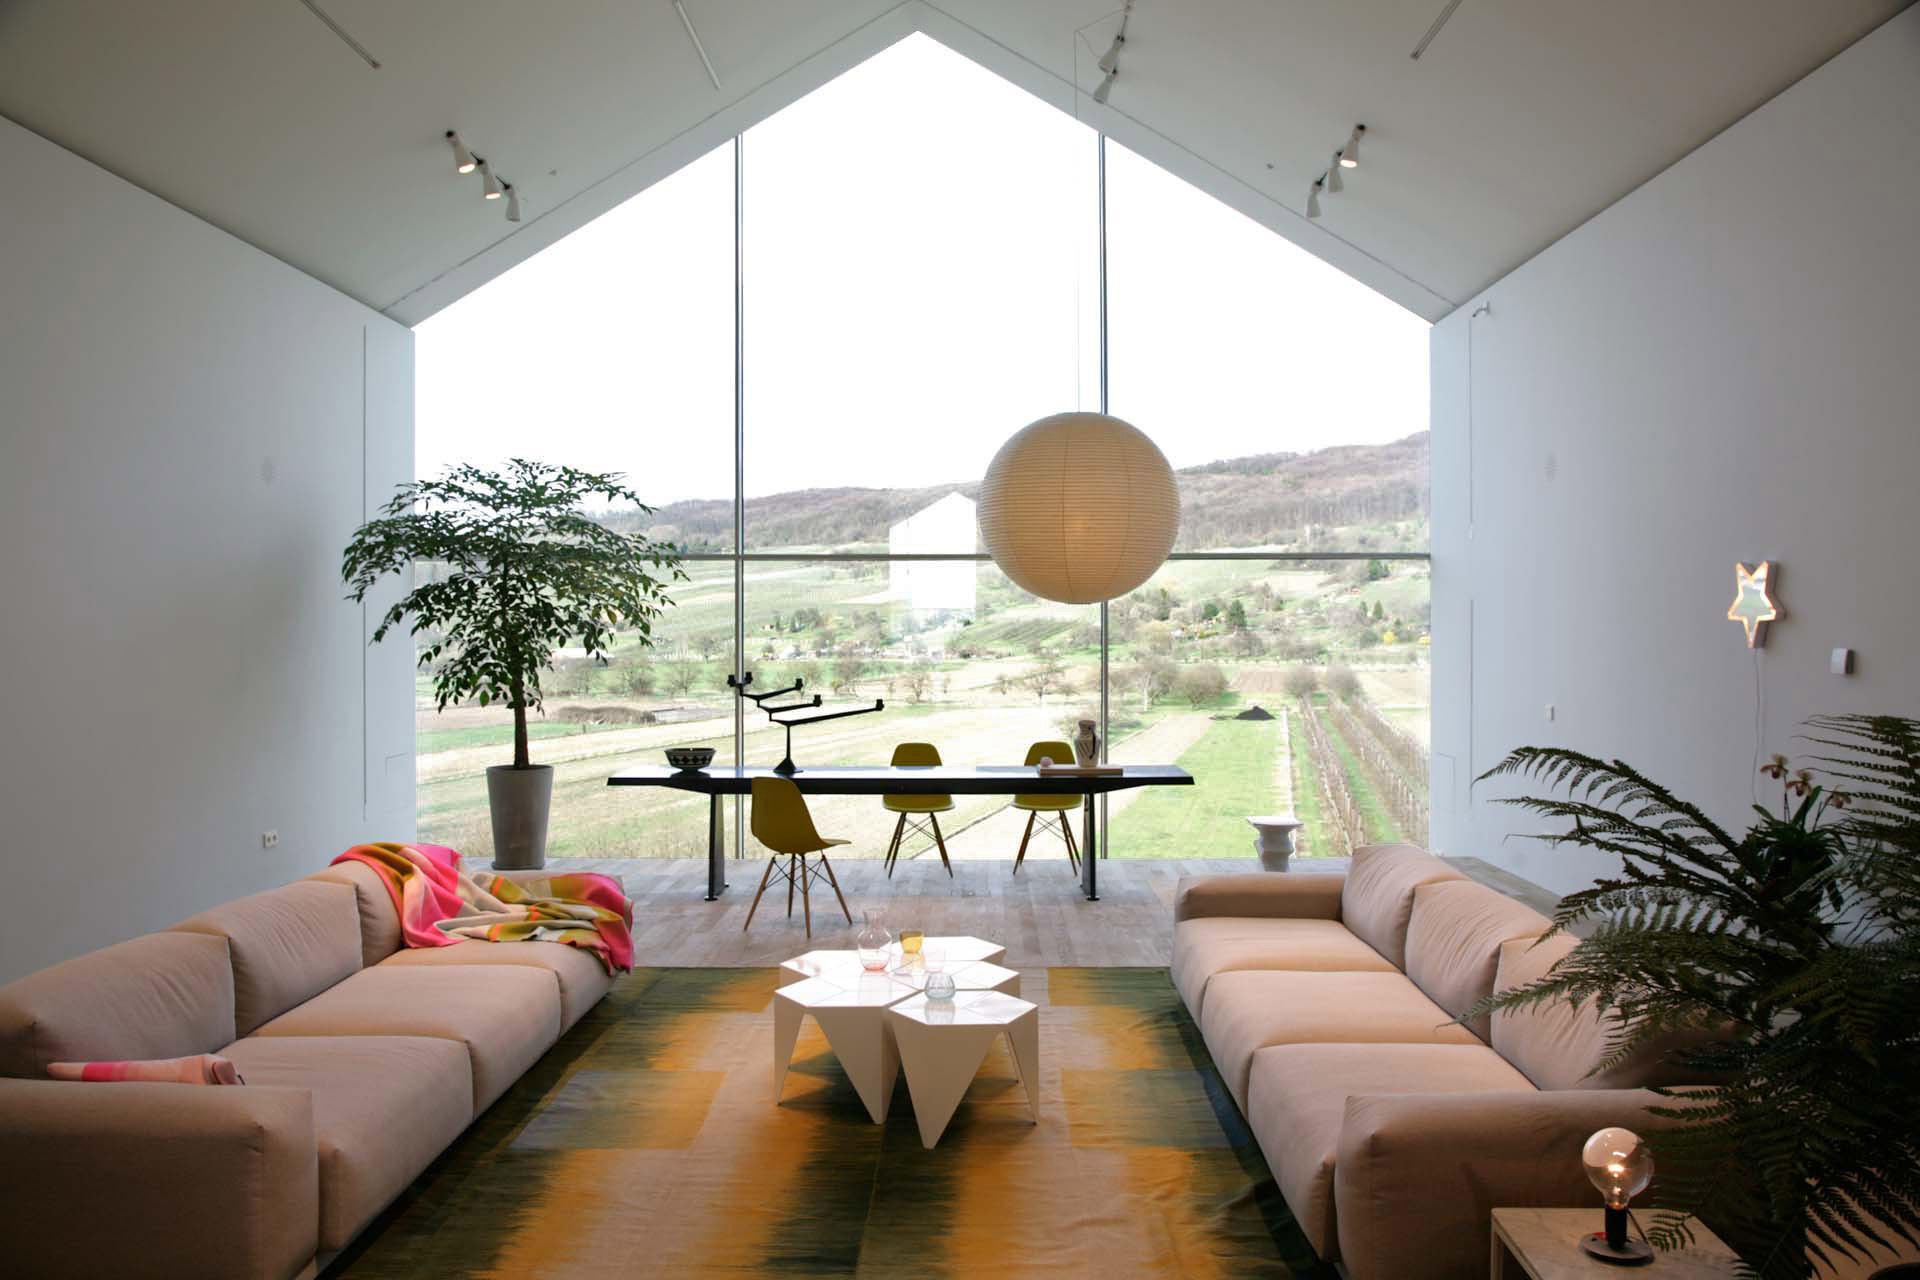 ...the Vitra Haus with big windows open to the nearby vineyards of the Tüllinger Hügel.